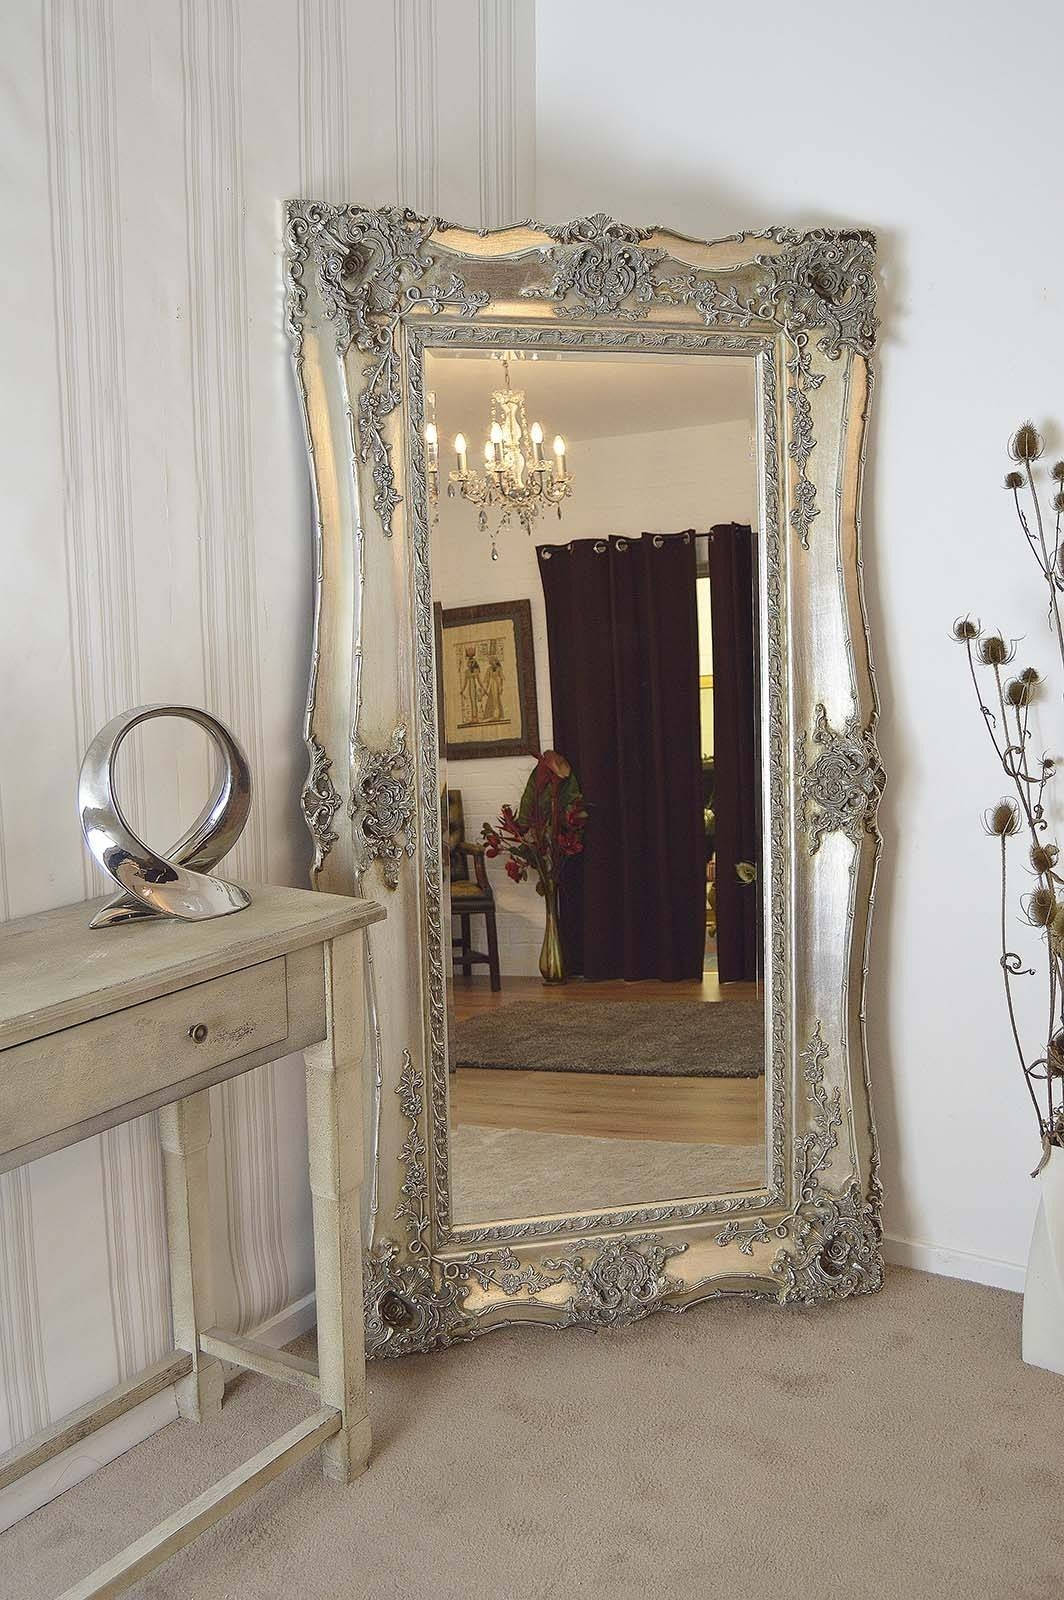 Large Antique Wall Mirror Ornate Frame Antique Ornate Wall Mirrors pertaining to Antique Large Mirrors (Image 19 of 25)